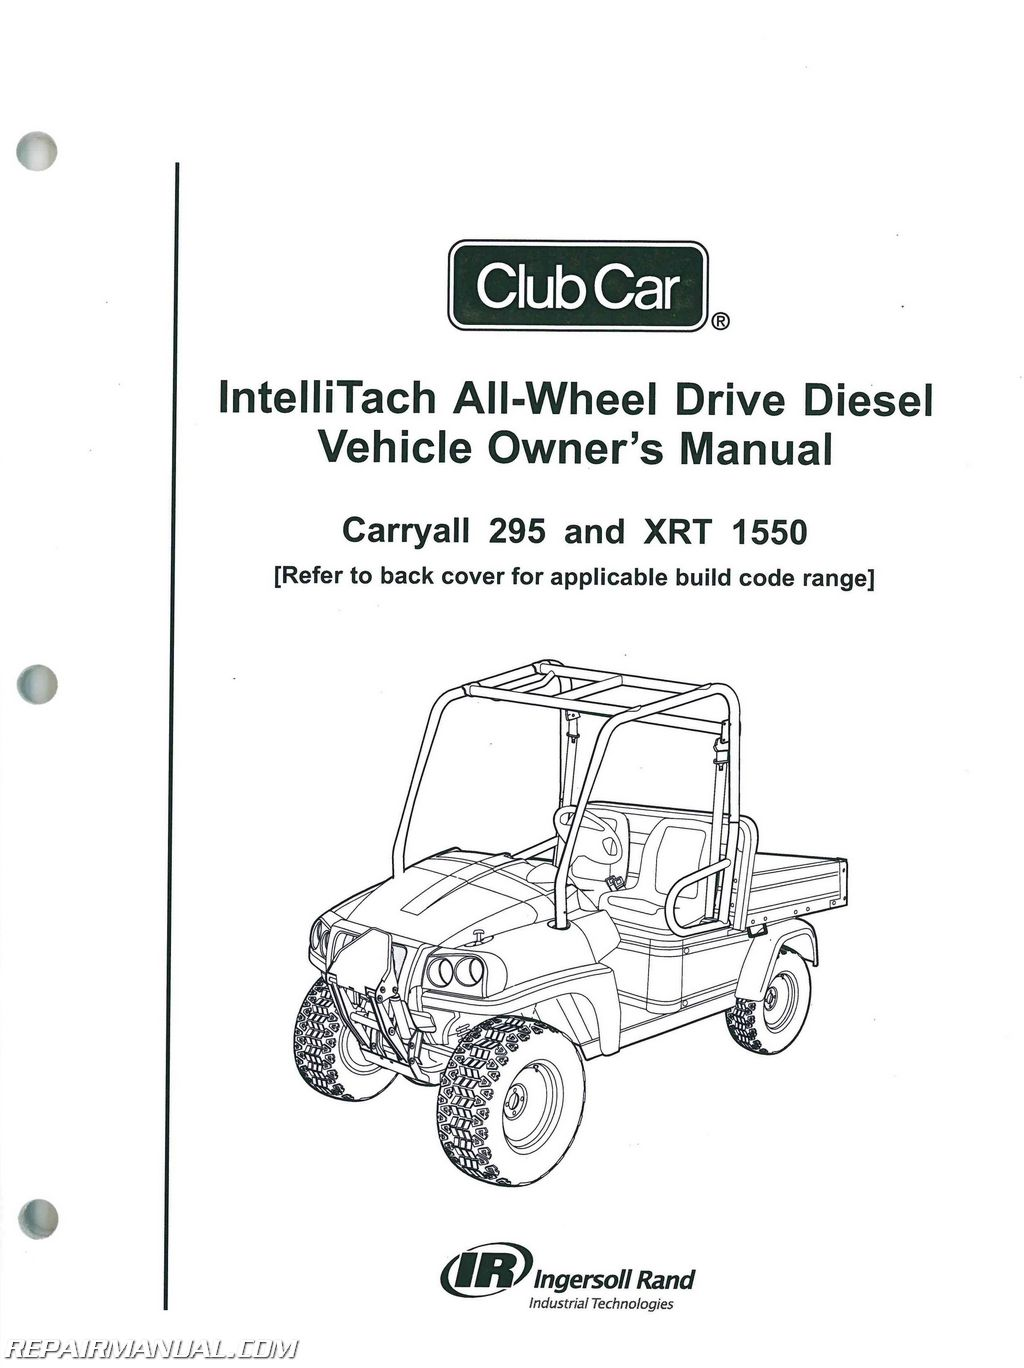 1991 club car manual various owner manual guide u2022 rh justk co 1993 club car parts manual 1993 club car service manual